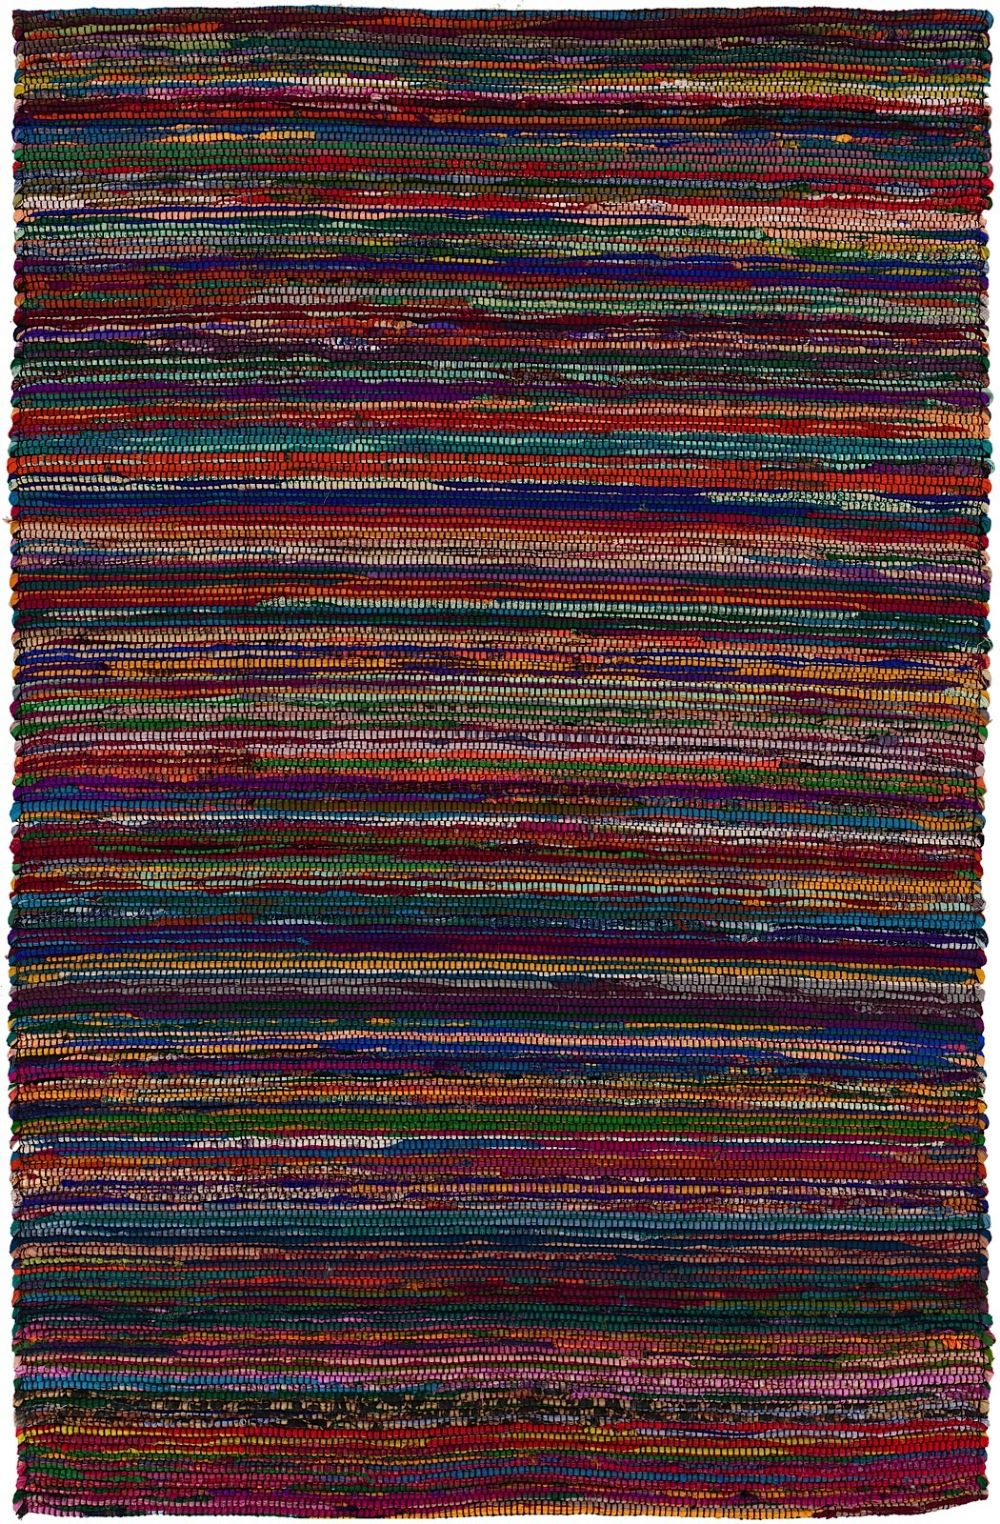 surya saturday night solid/striped area rug collection